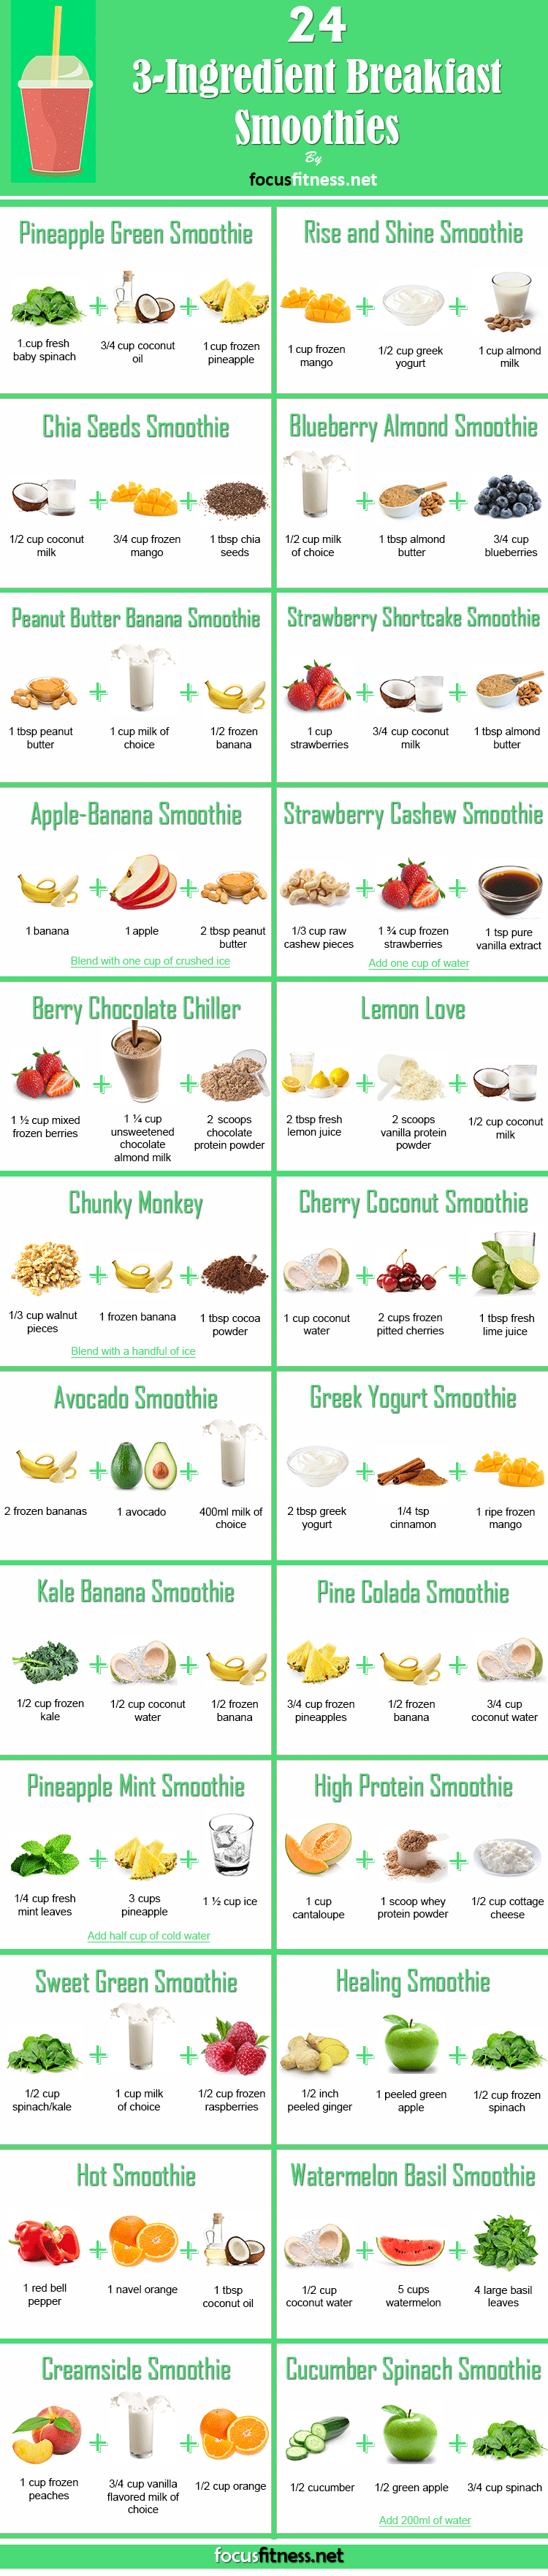 3-Ingredient Breakfast Smoothies To Supercharge Your Mornings Infographic